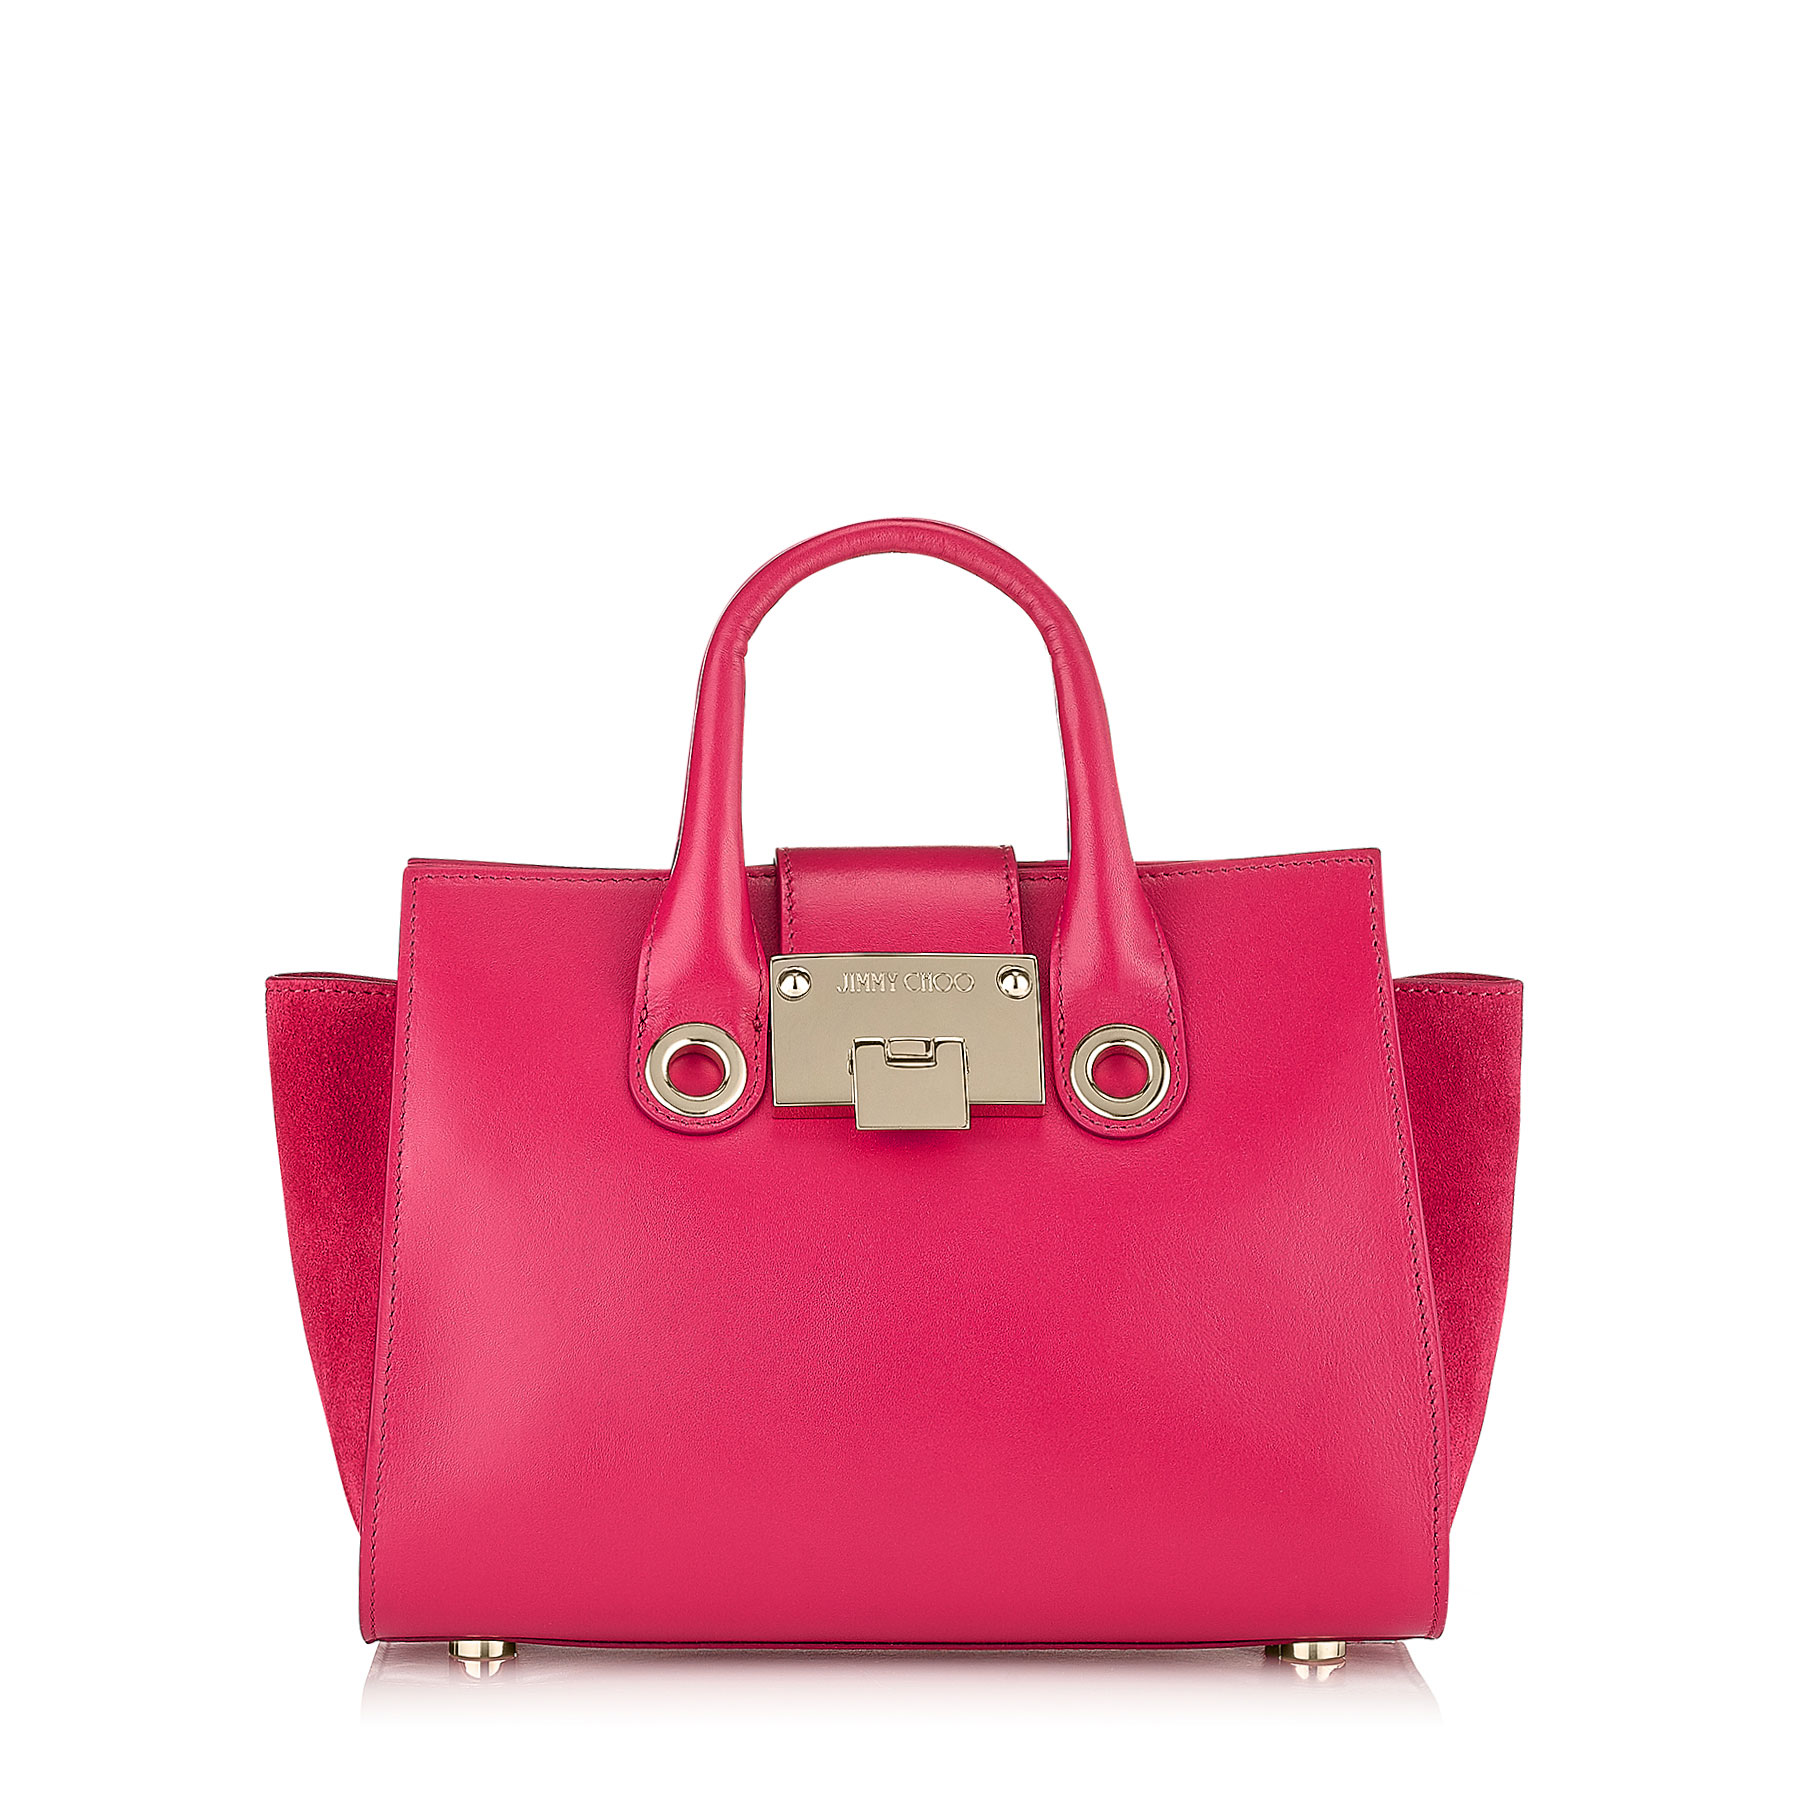 RILEY S Raspberry Smooth Leather and Suede Small Tote Bag